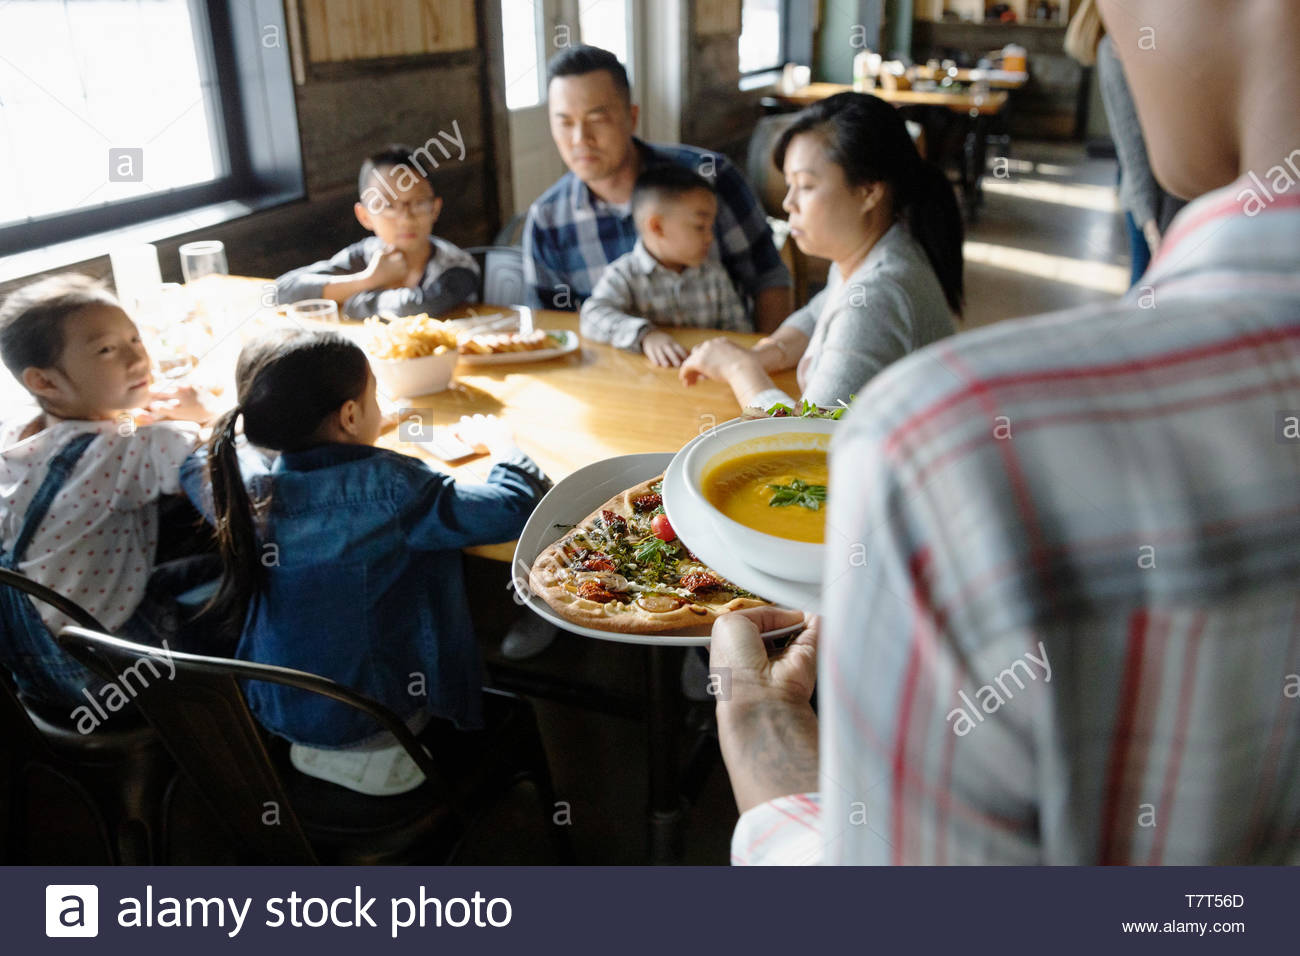 Waitress serving food to family dining in restaurant - Stock Image